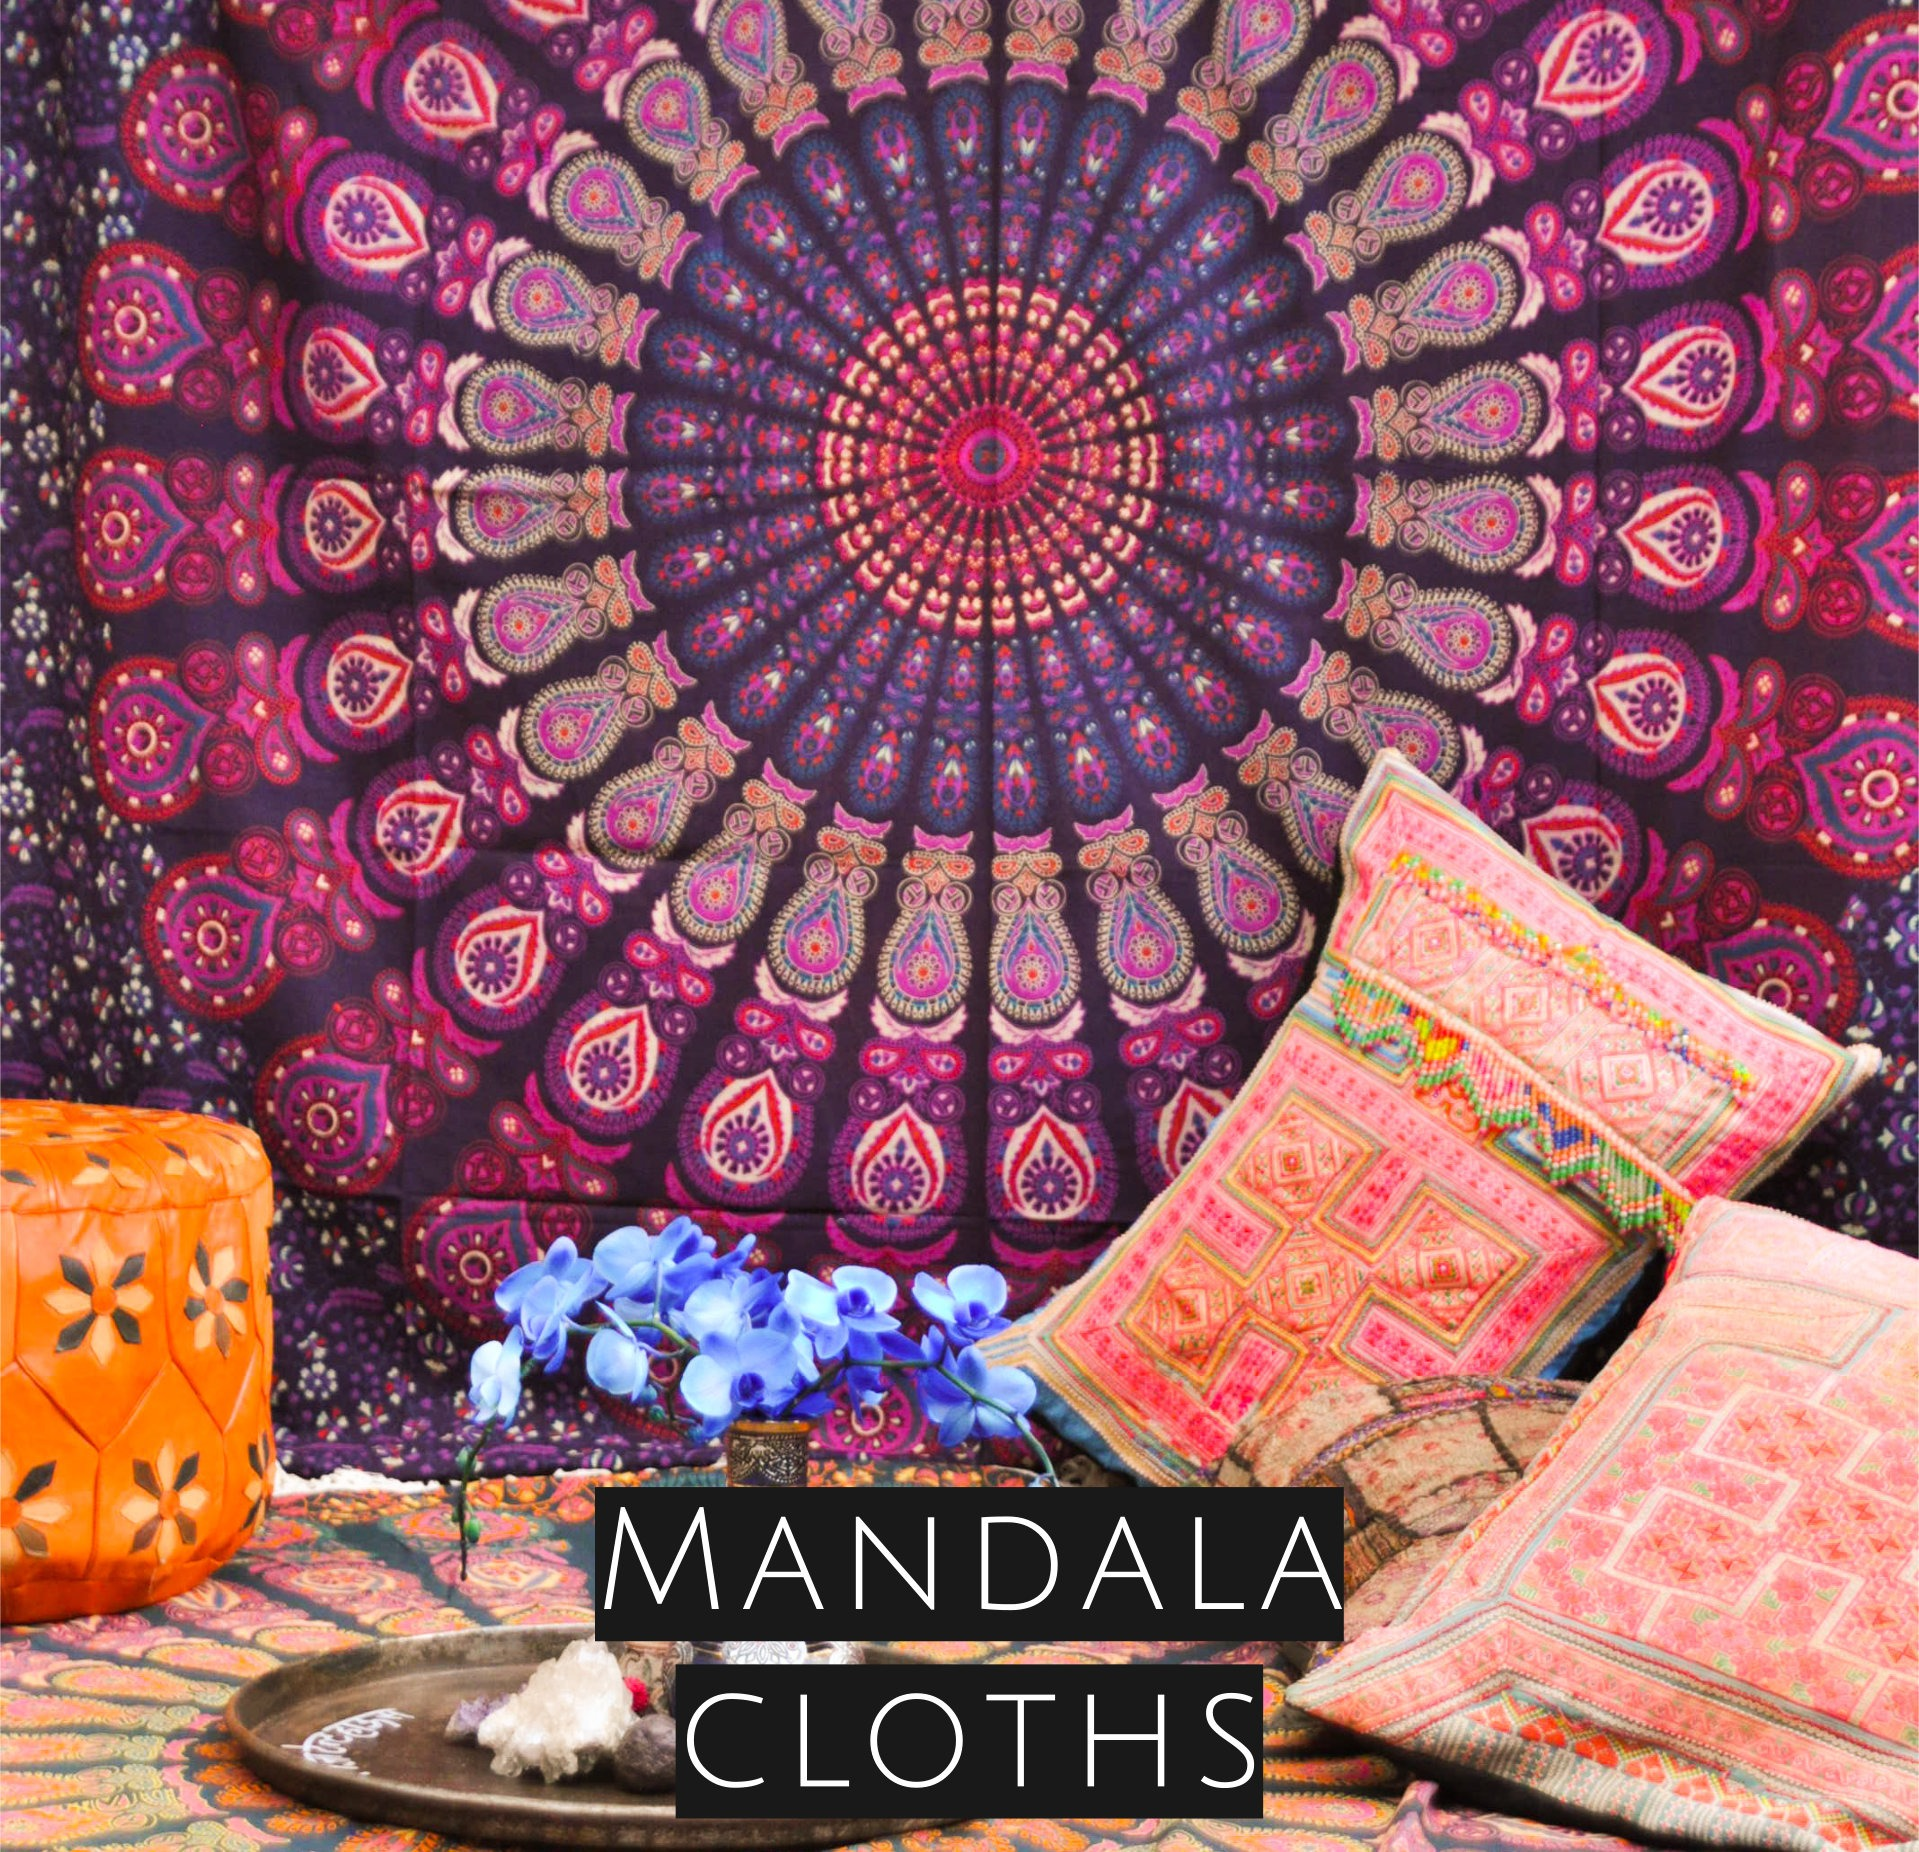 mandala cloths